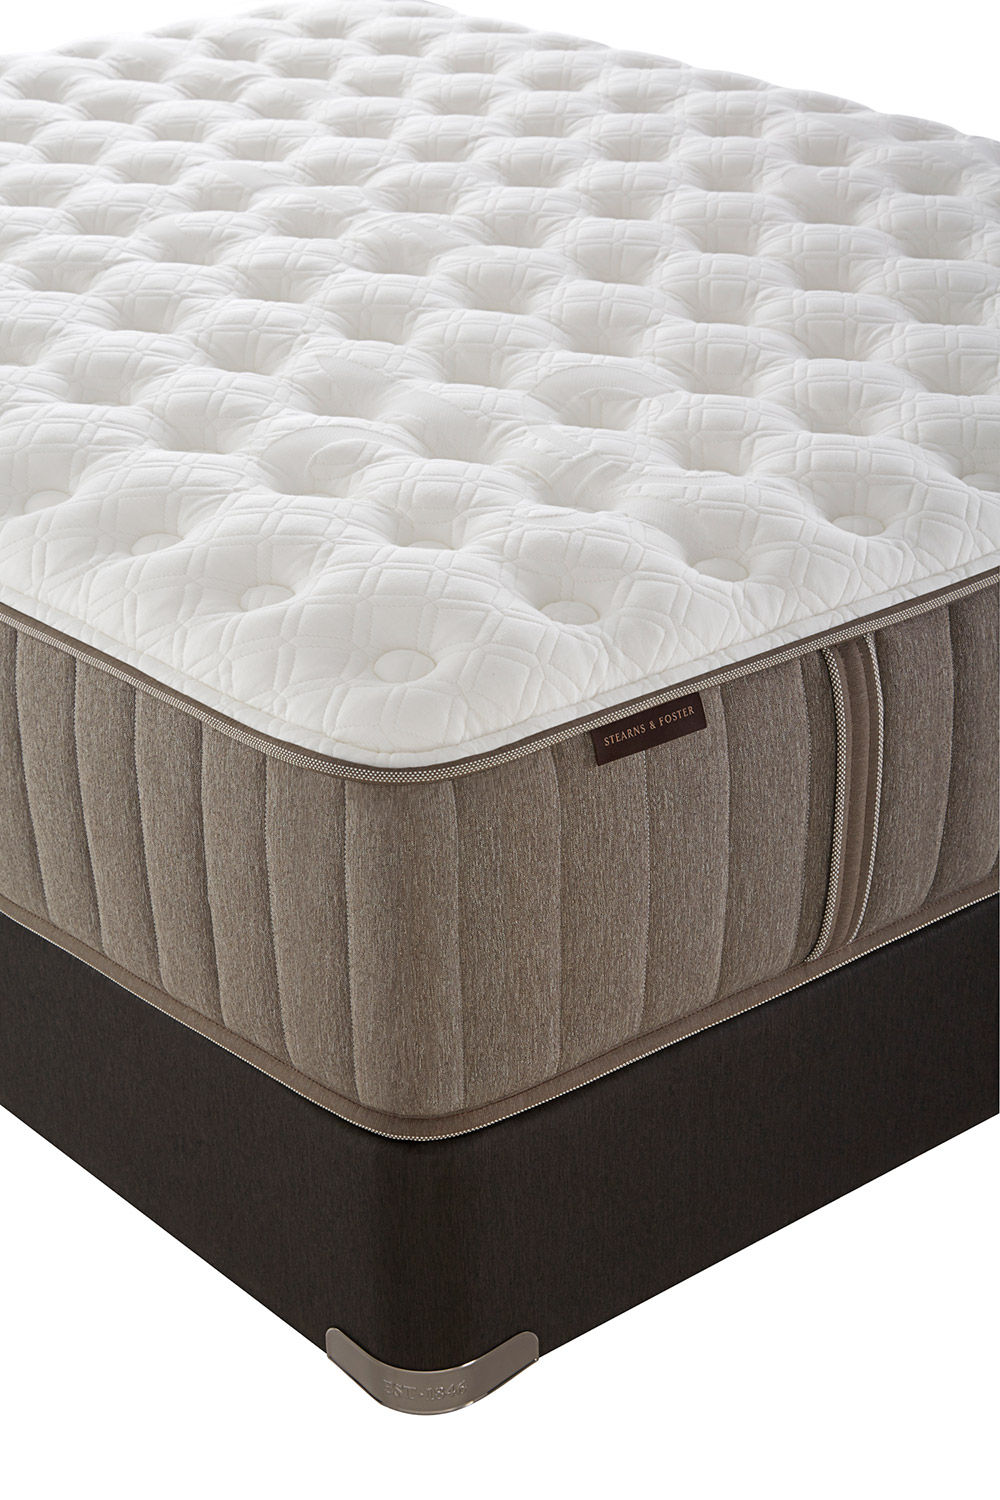 Picture of Stearns & Foster Scarborough Firm Tighttop Twin XL Mattress Set